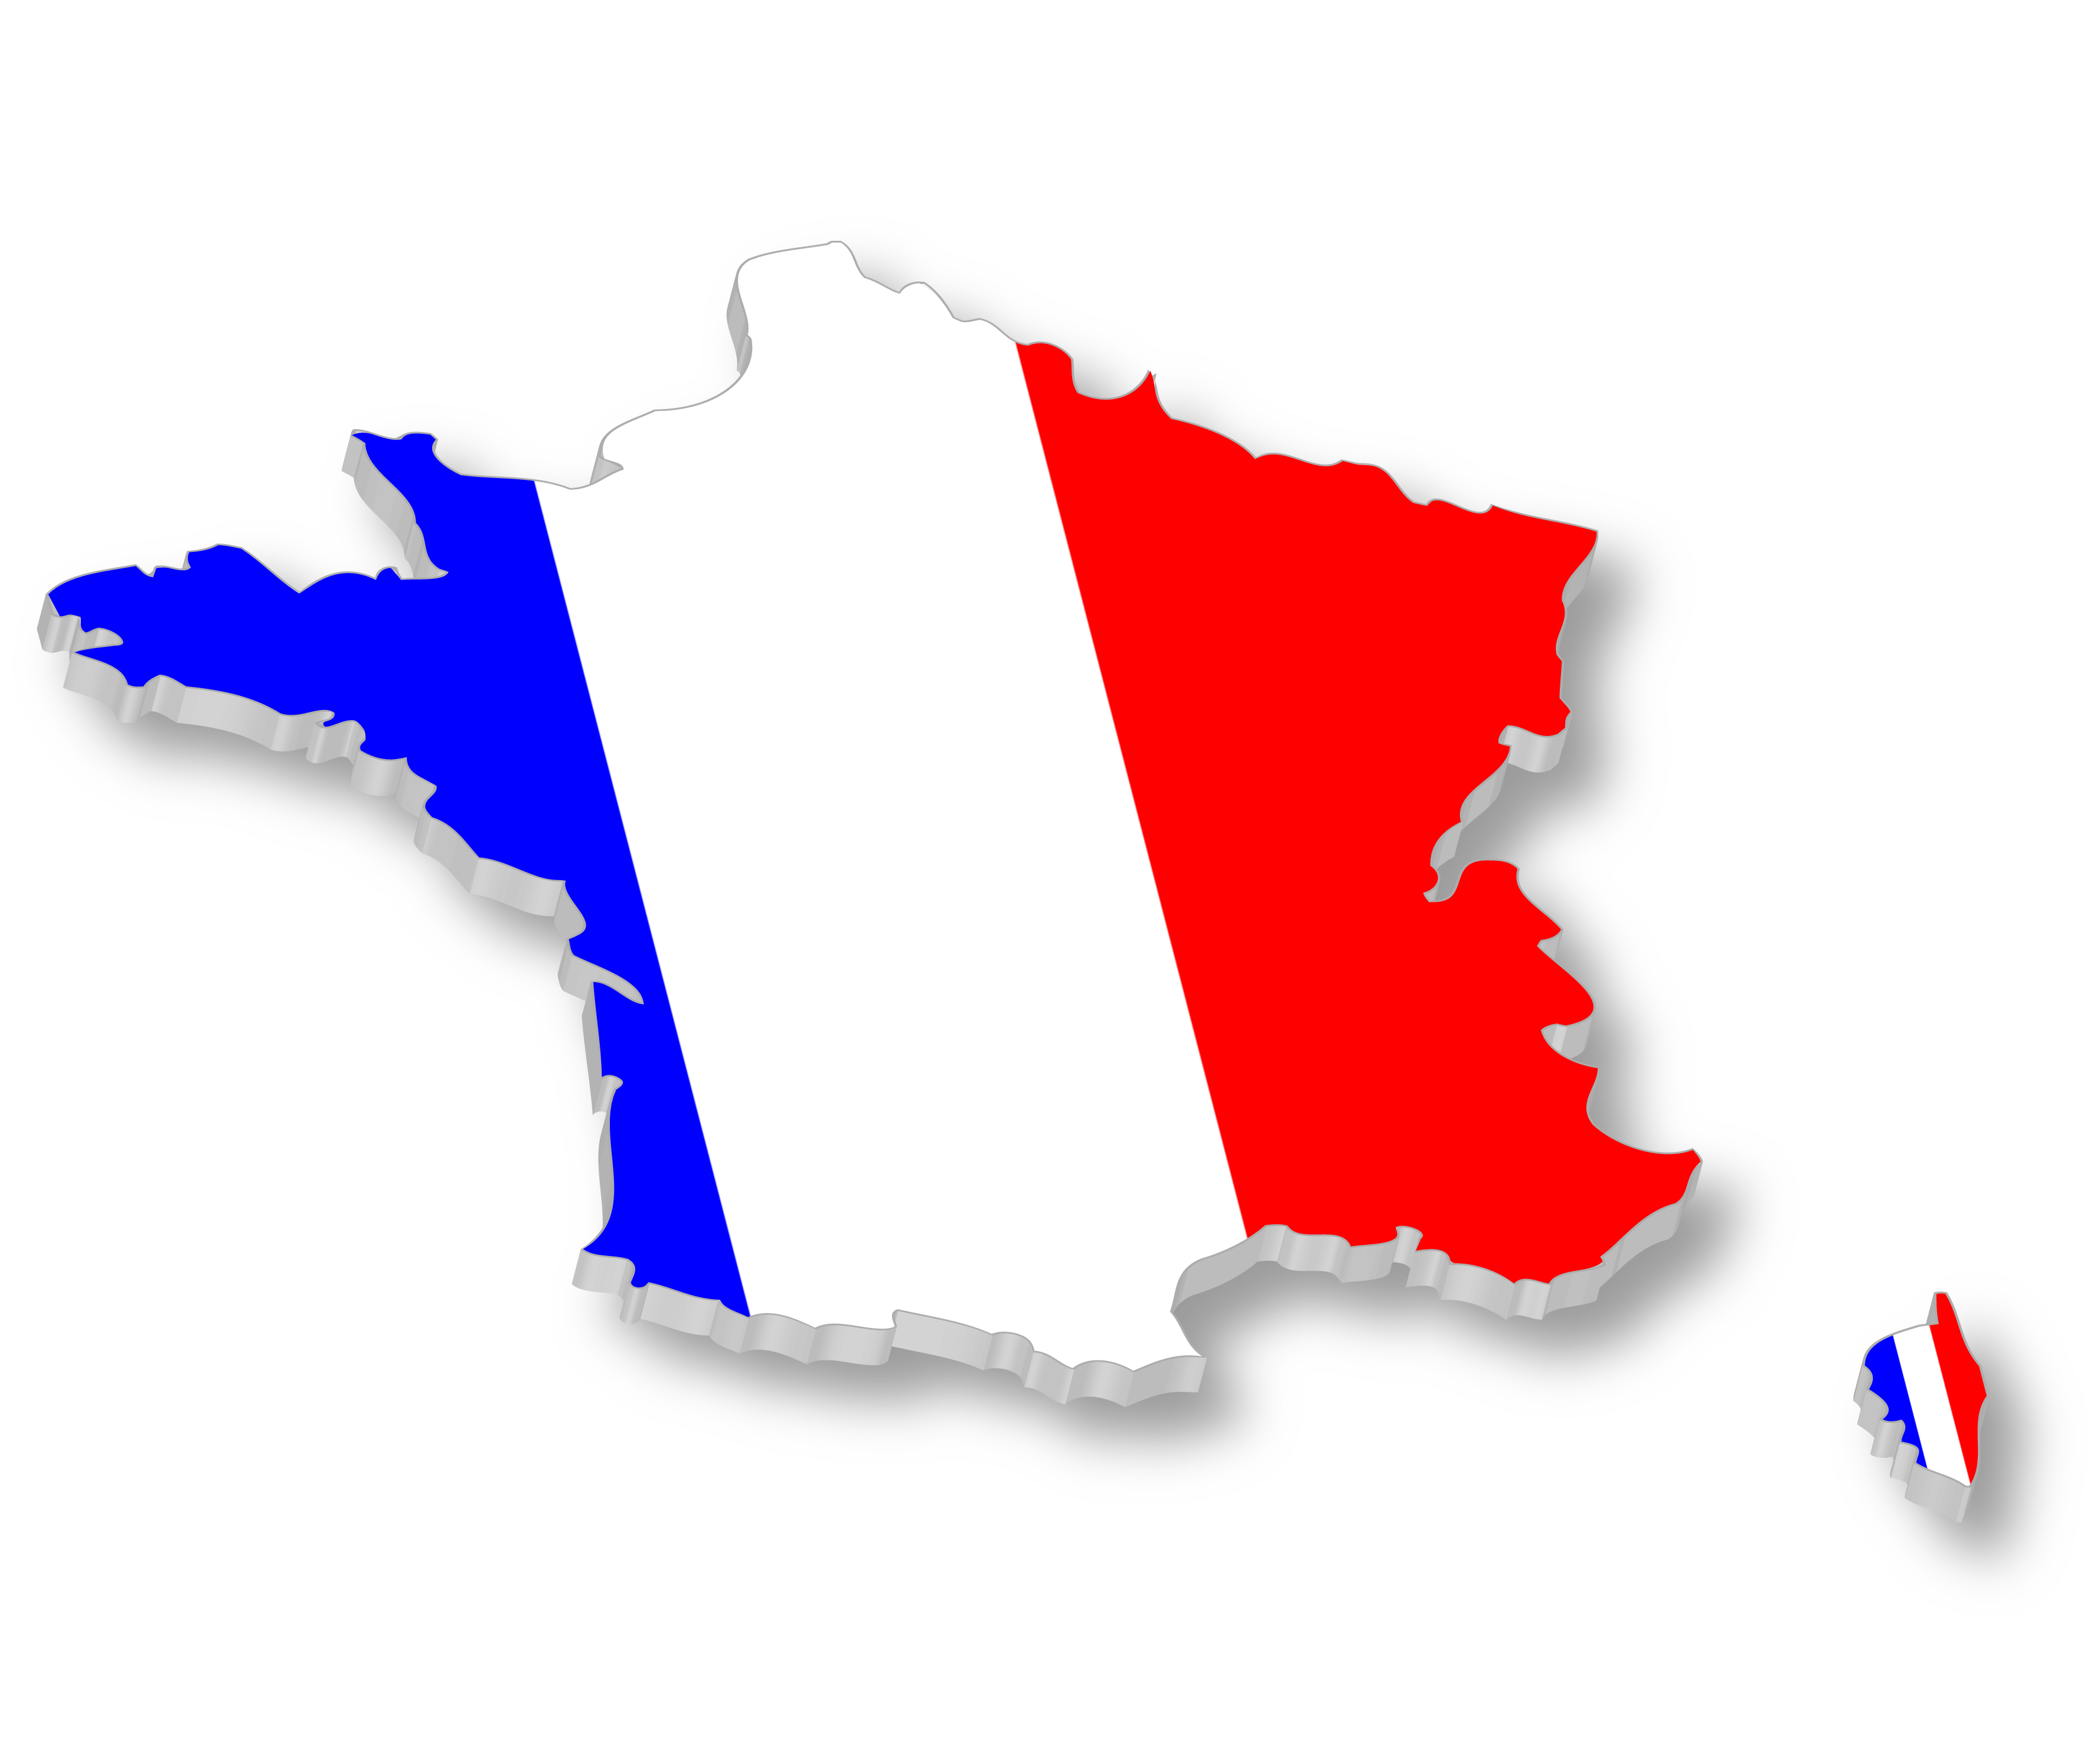 Gaming figures in France but falls in Europe